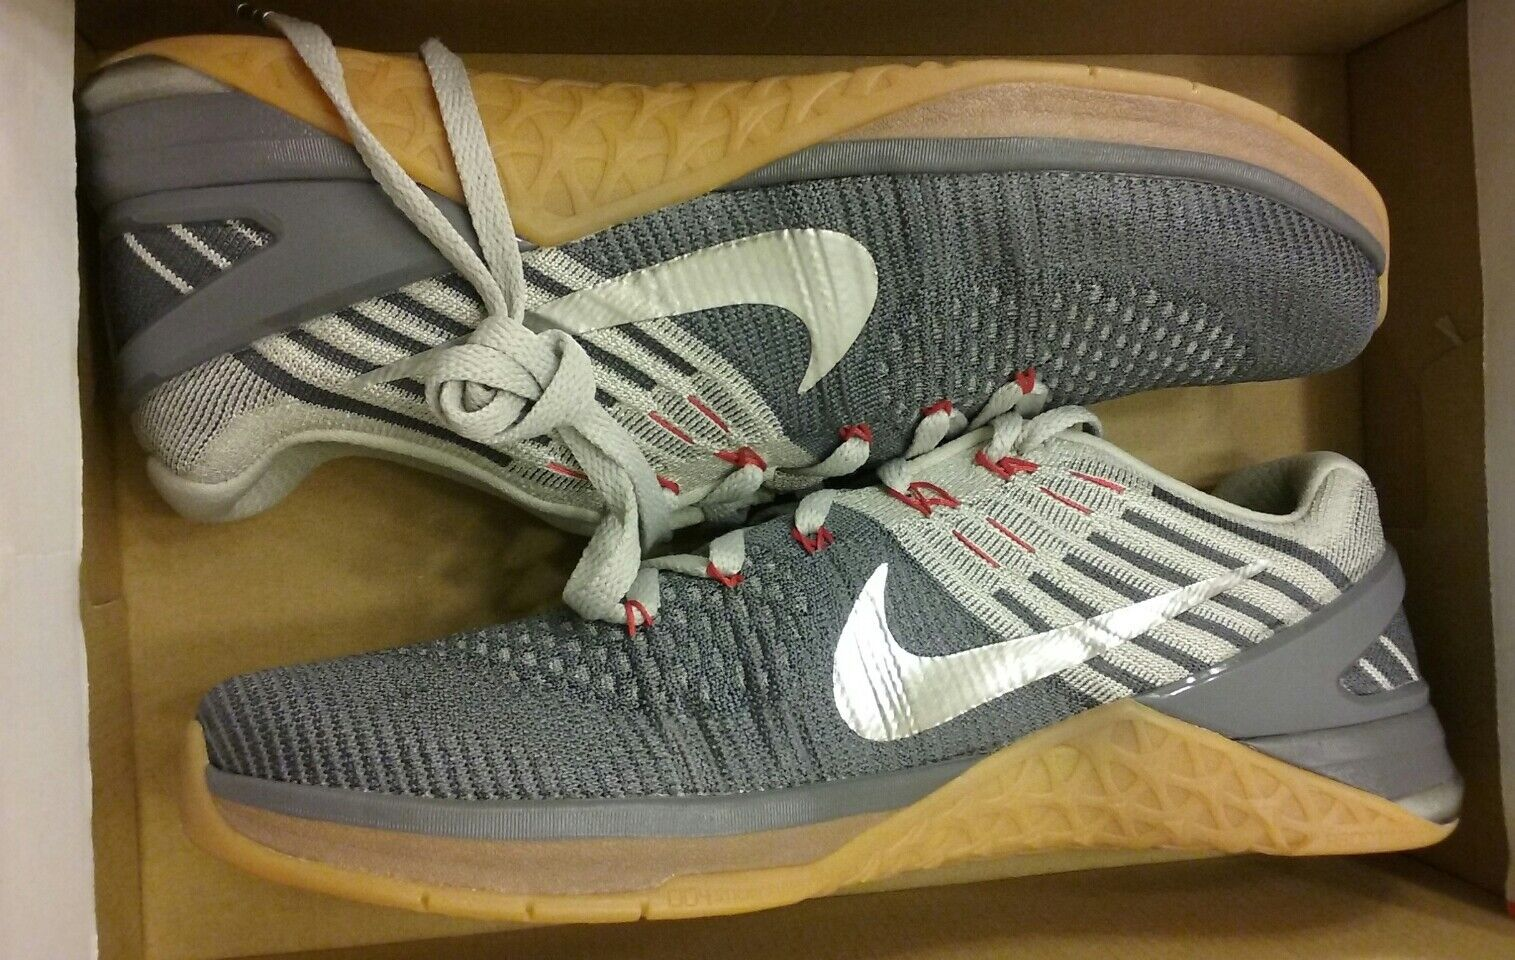 39190225ea3e6 ... nike metcon dsx flyknit chaussures sz hommes 852930-012 sz chaussures 8  formation 2dd430 ...